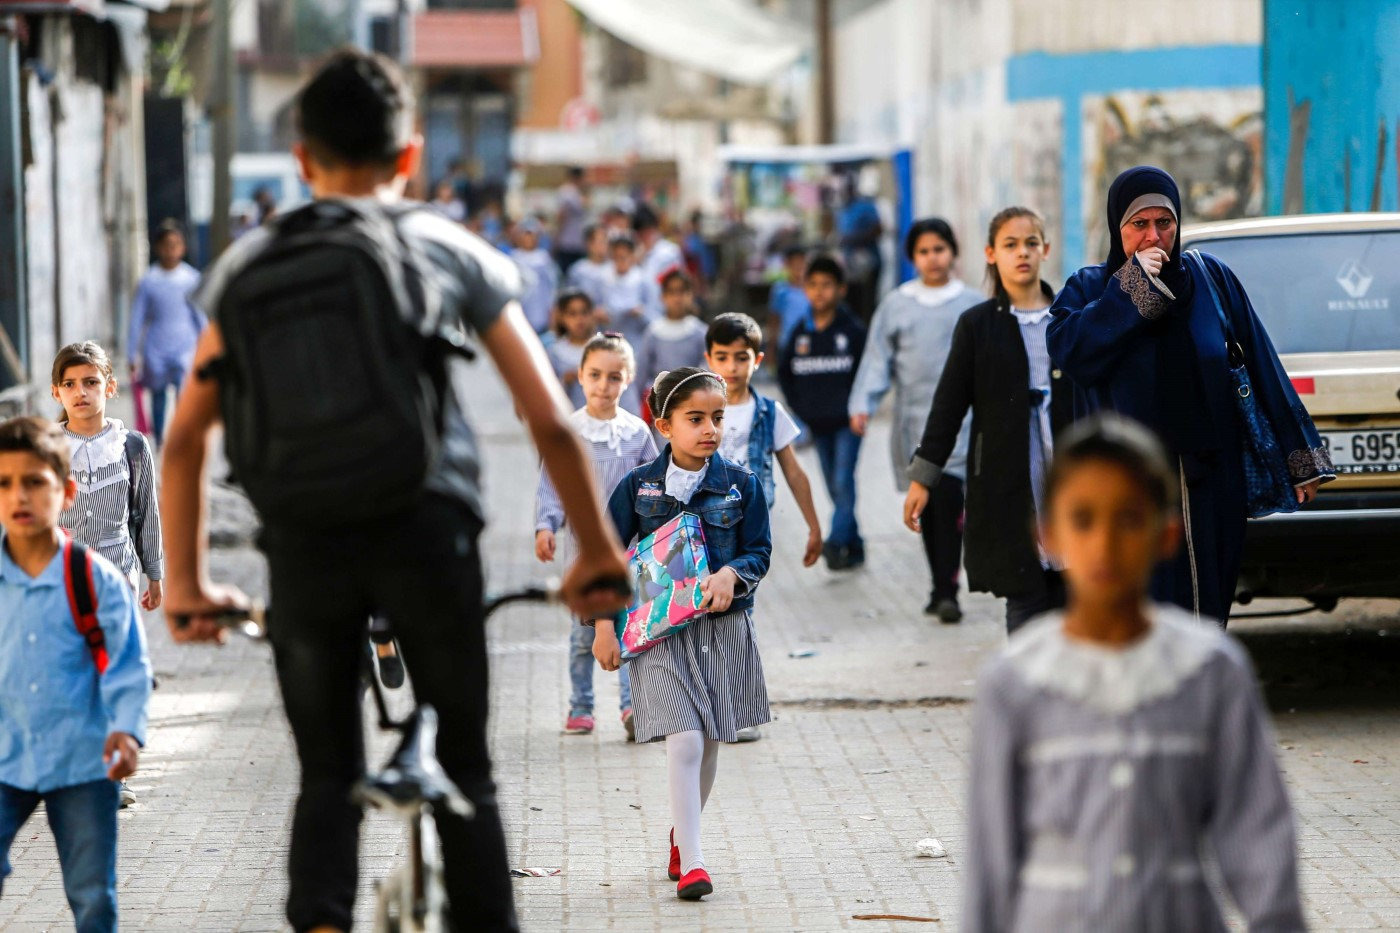 Palestinian students walk on their way to school to attend their end-of-year exams in Gaza City on May 23, 2019. (AFP)